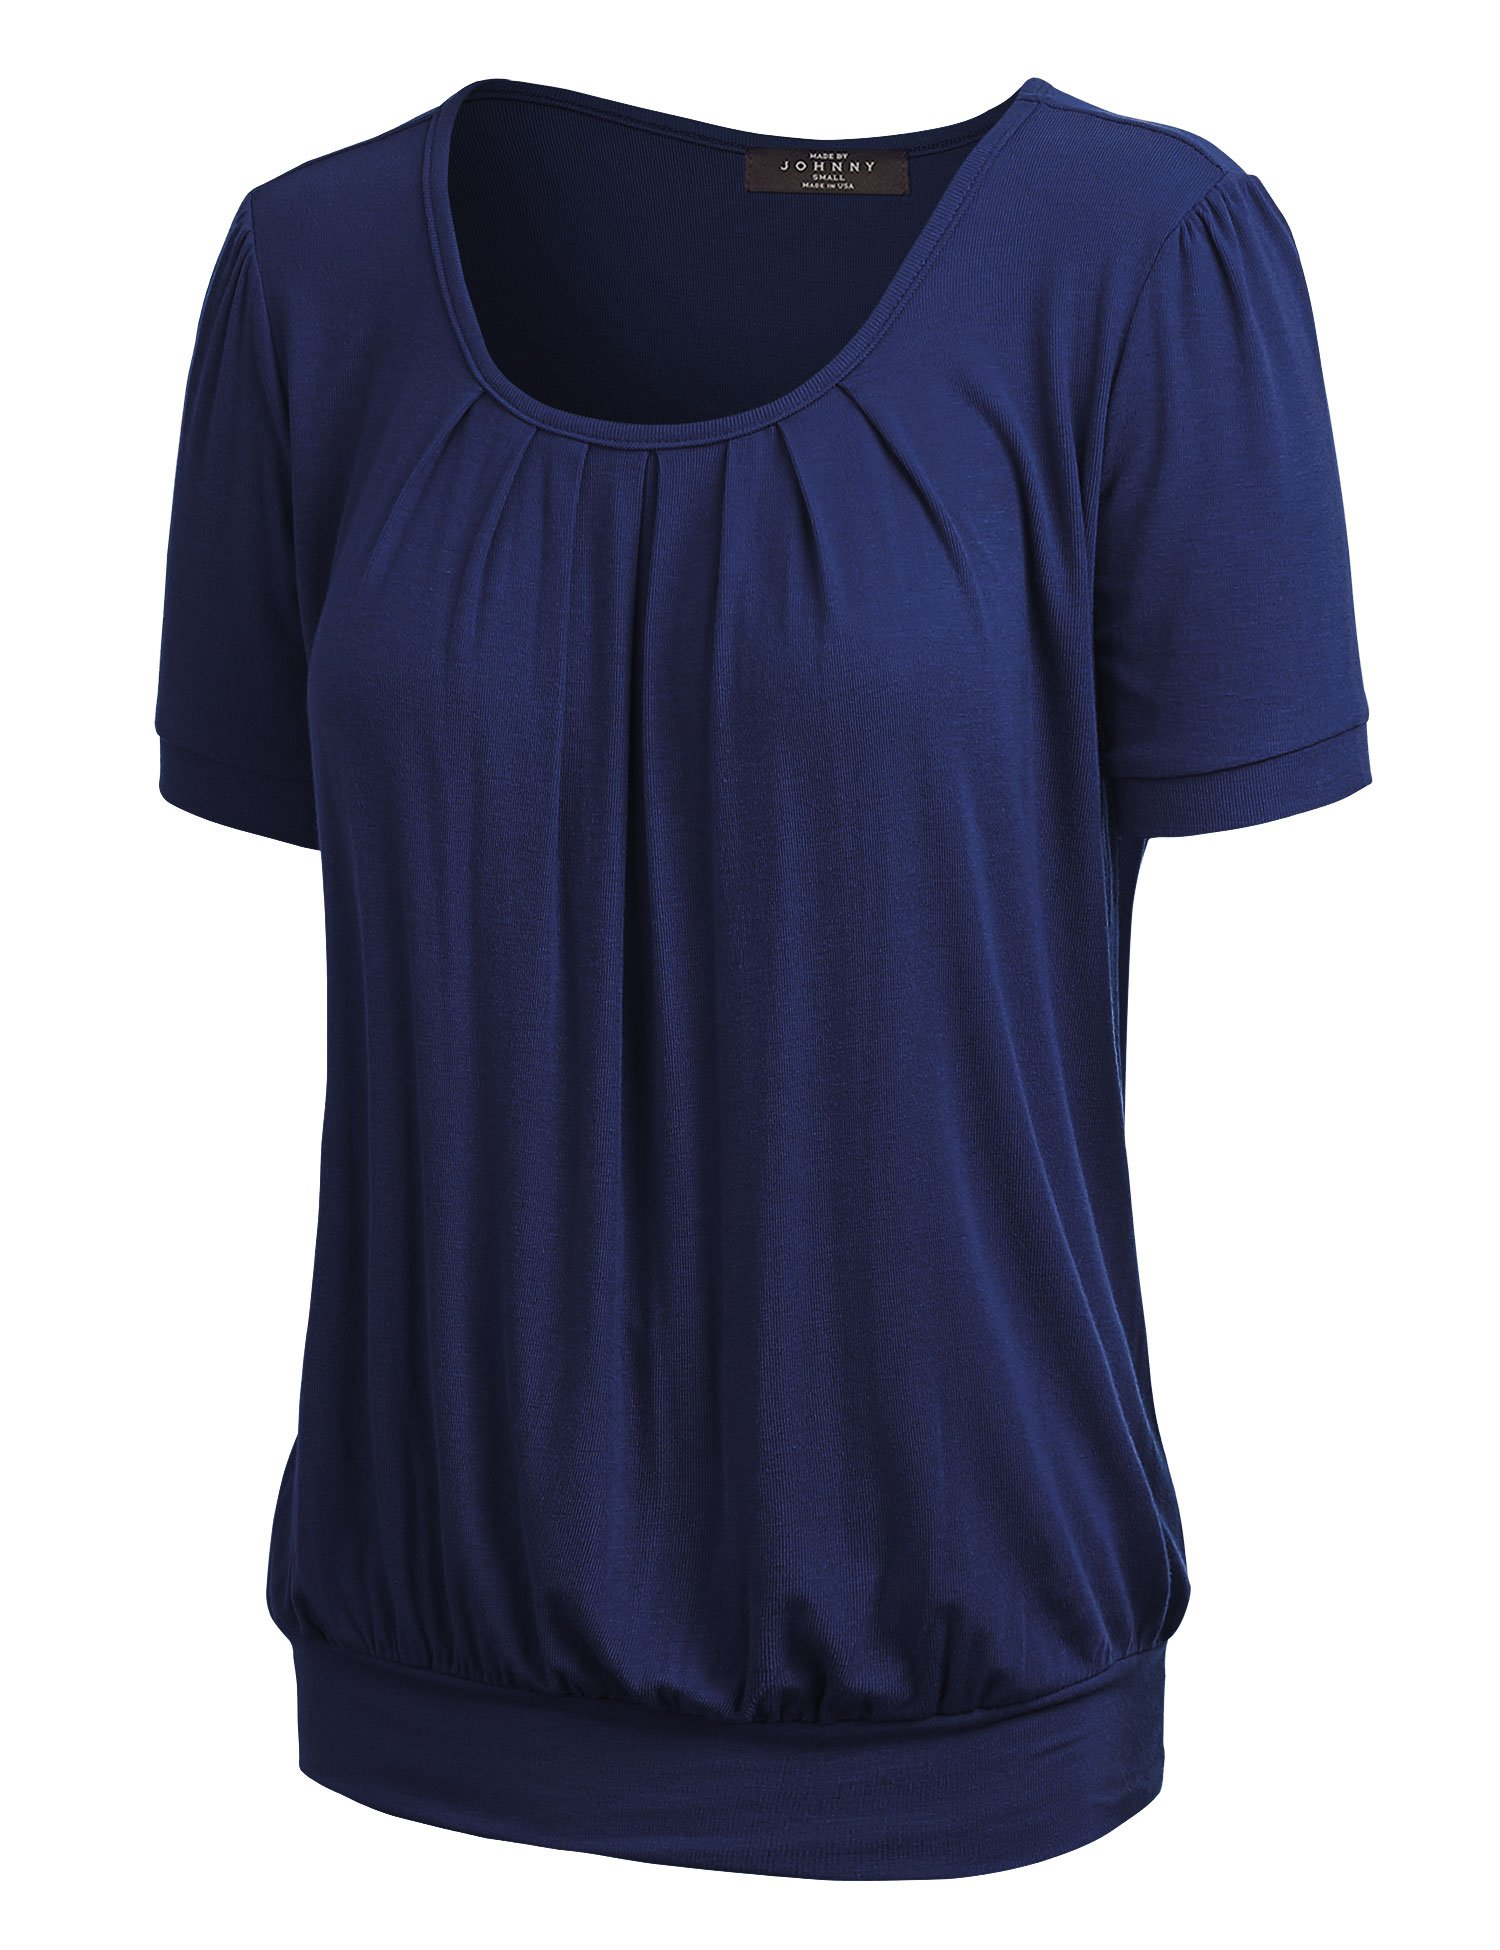 Made By Johnny WT1175 Womens Scoop Neck Short Sleeve Front Pleated Tunic S Navy by Made By Johnny (Image #2)